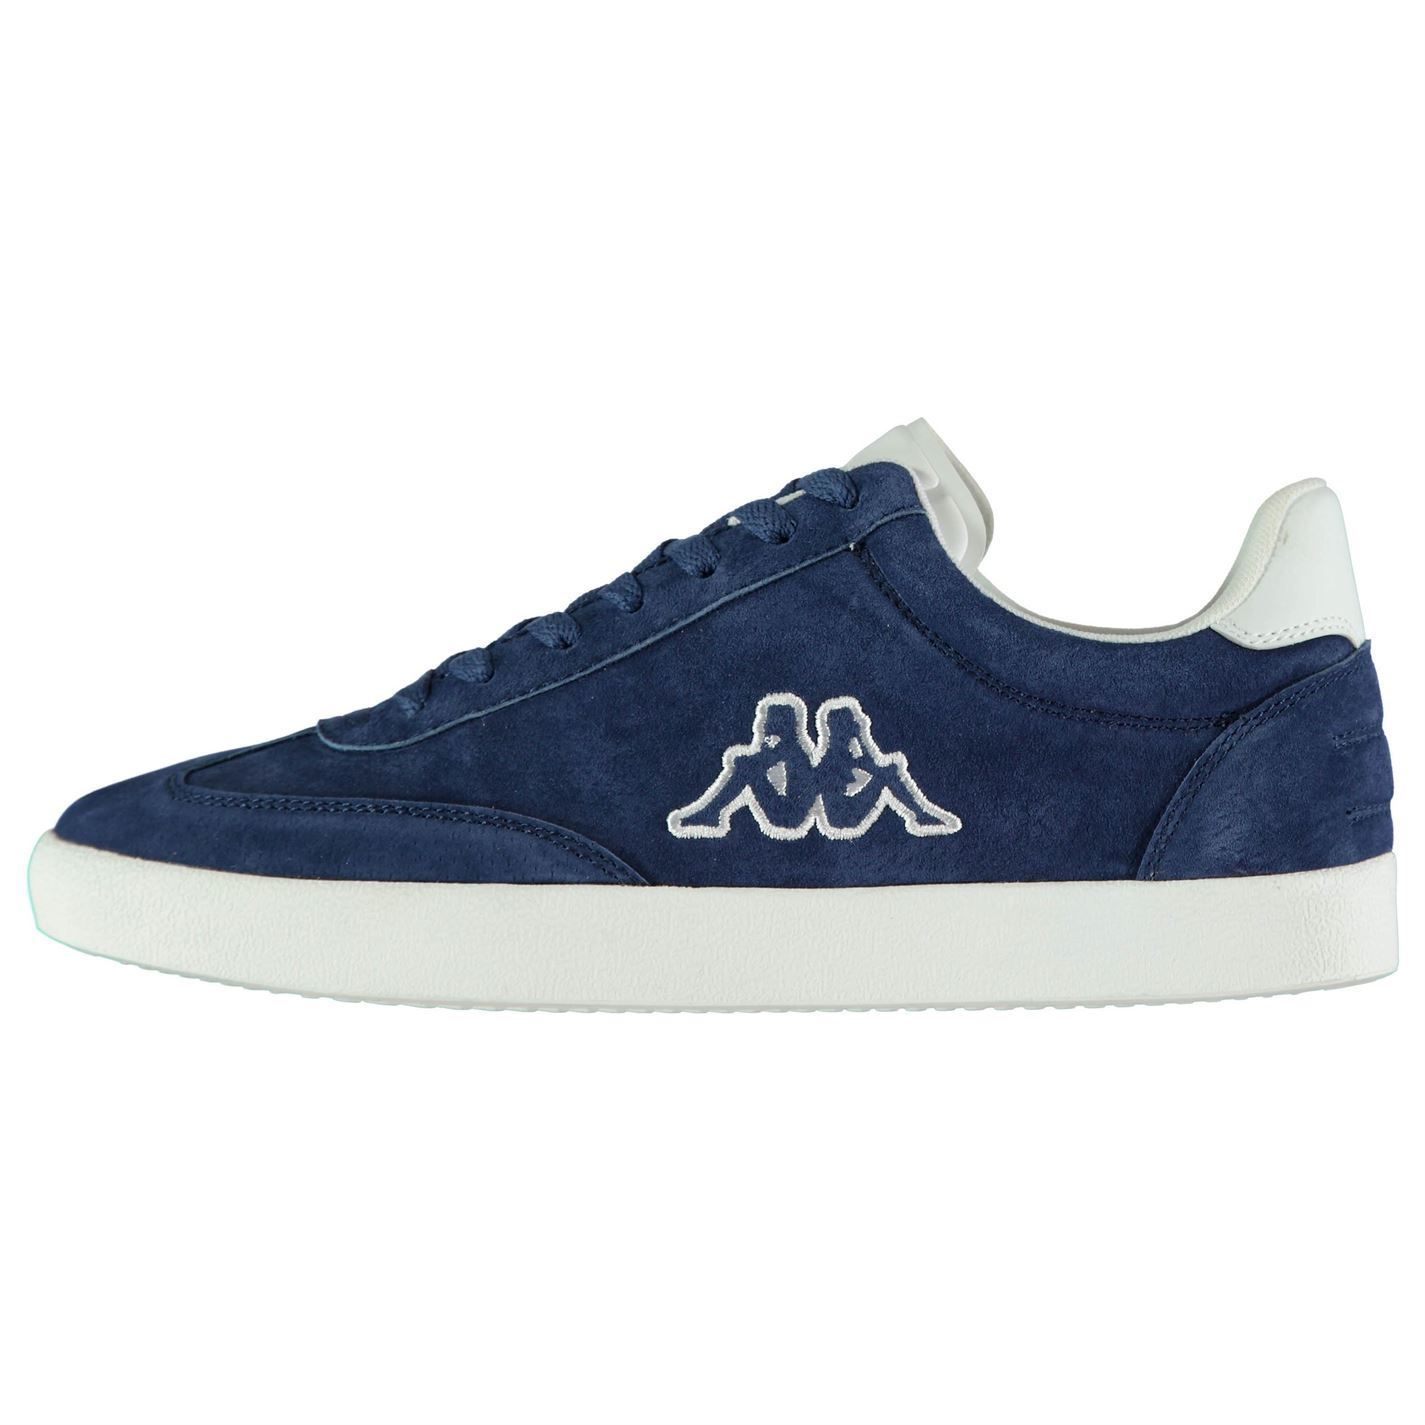 new products bc359 73a09 Details about Kappa Collin Leather Trainers Mens Athleisure Footwear Shoes  Sneakers